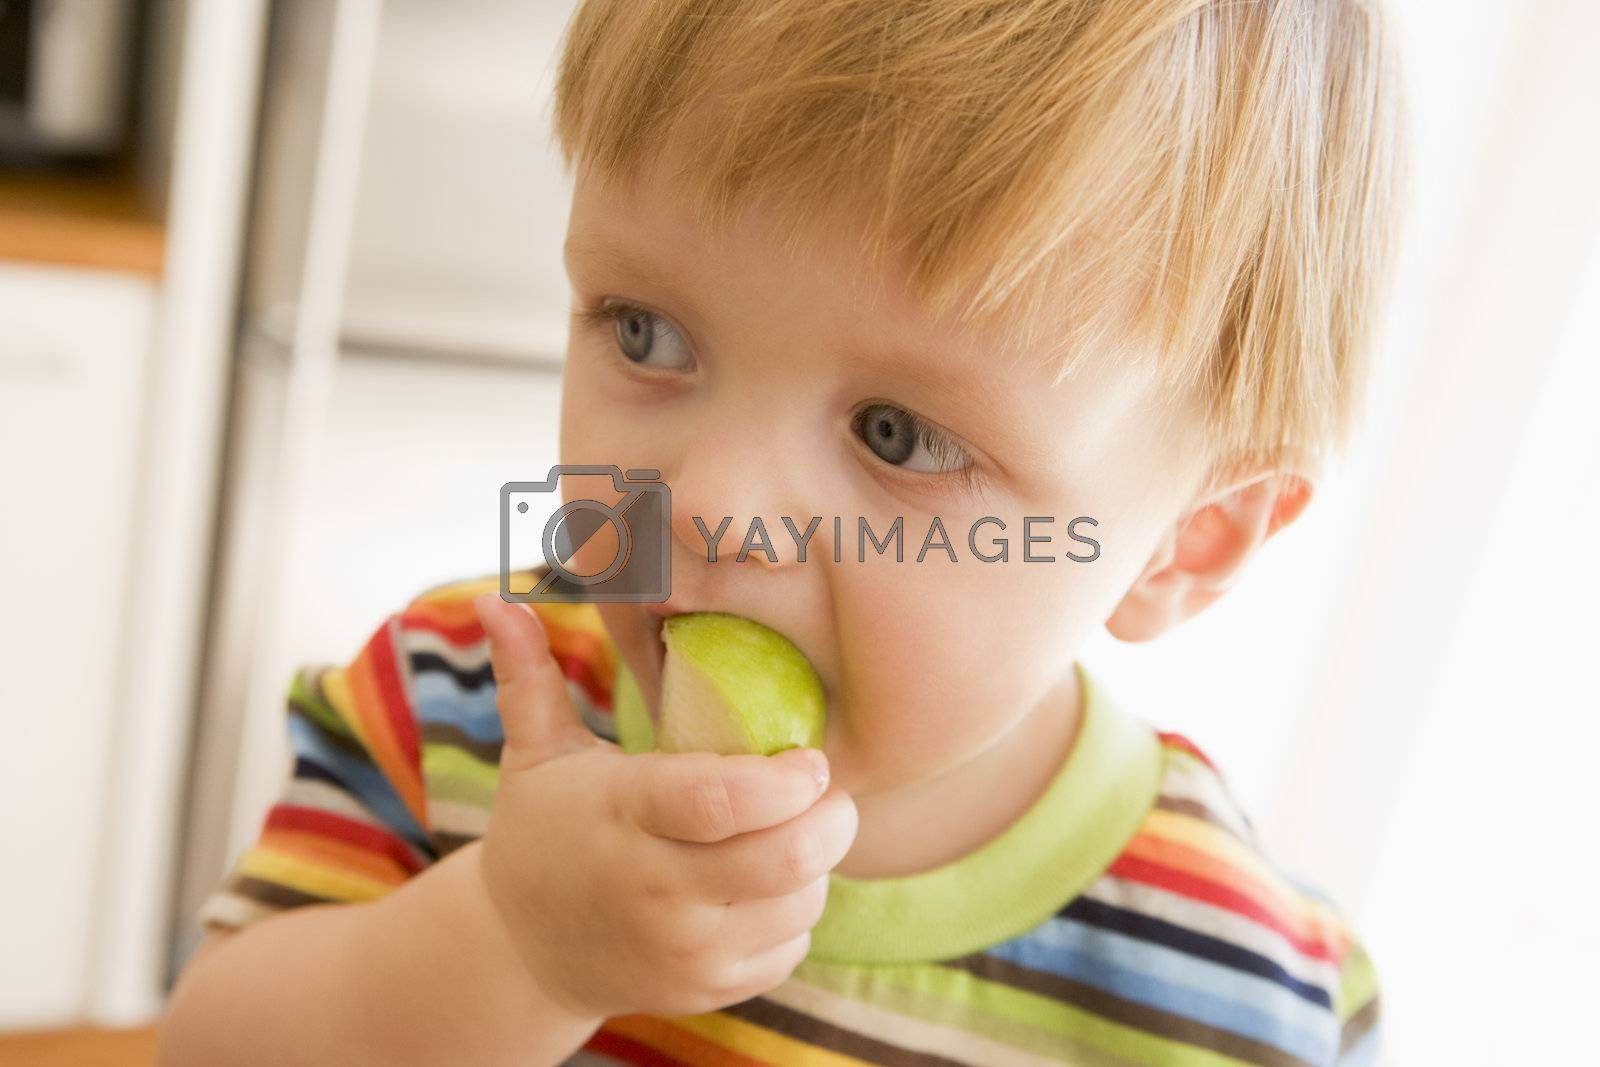 Young boy eating apple indoors by MonkeyBusiness